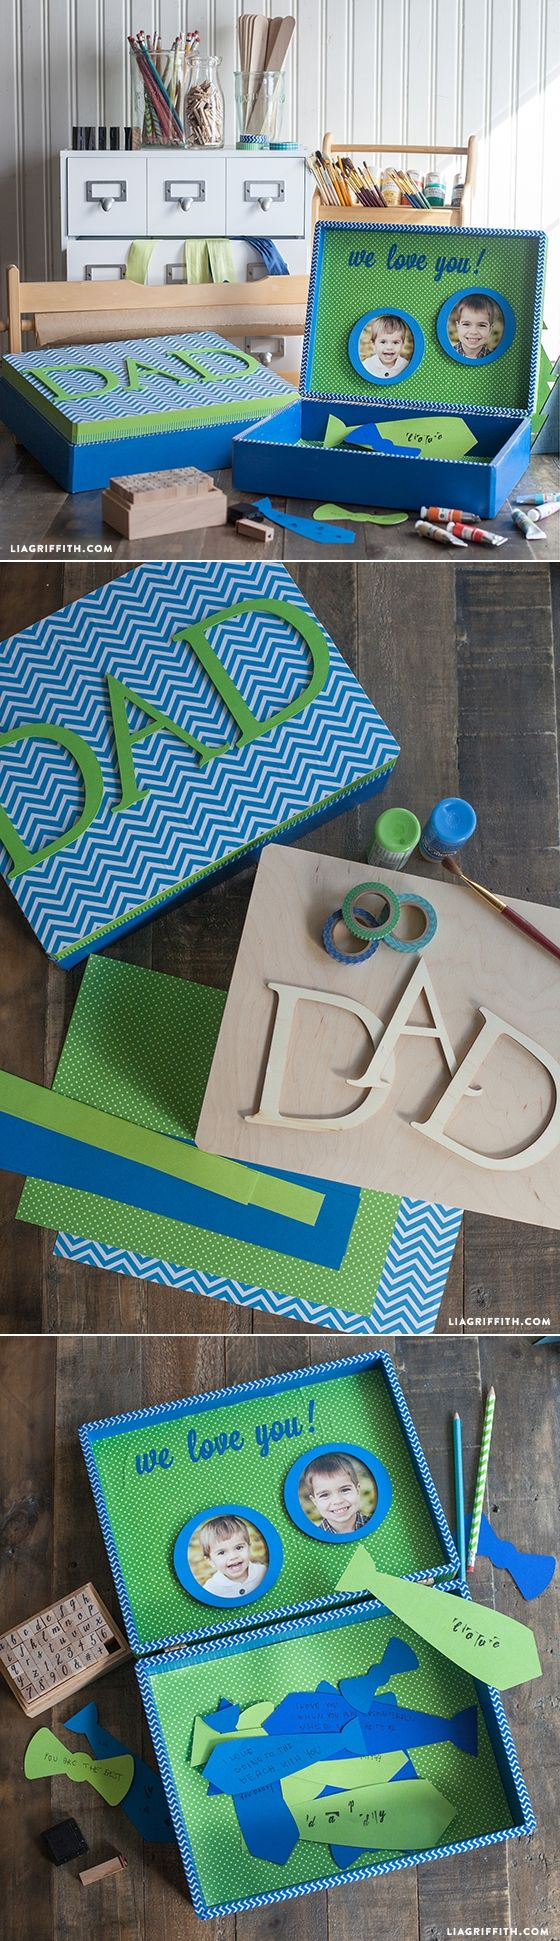 #diyfathersday #fathersdaycrafts at www.LiaGriffith.com